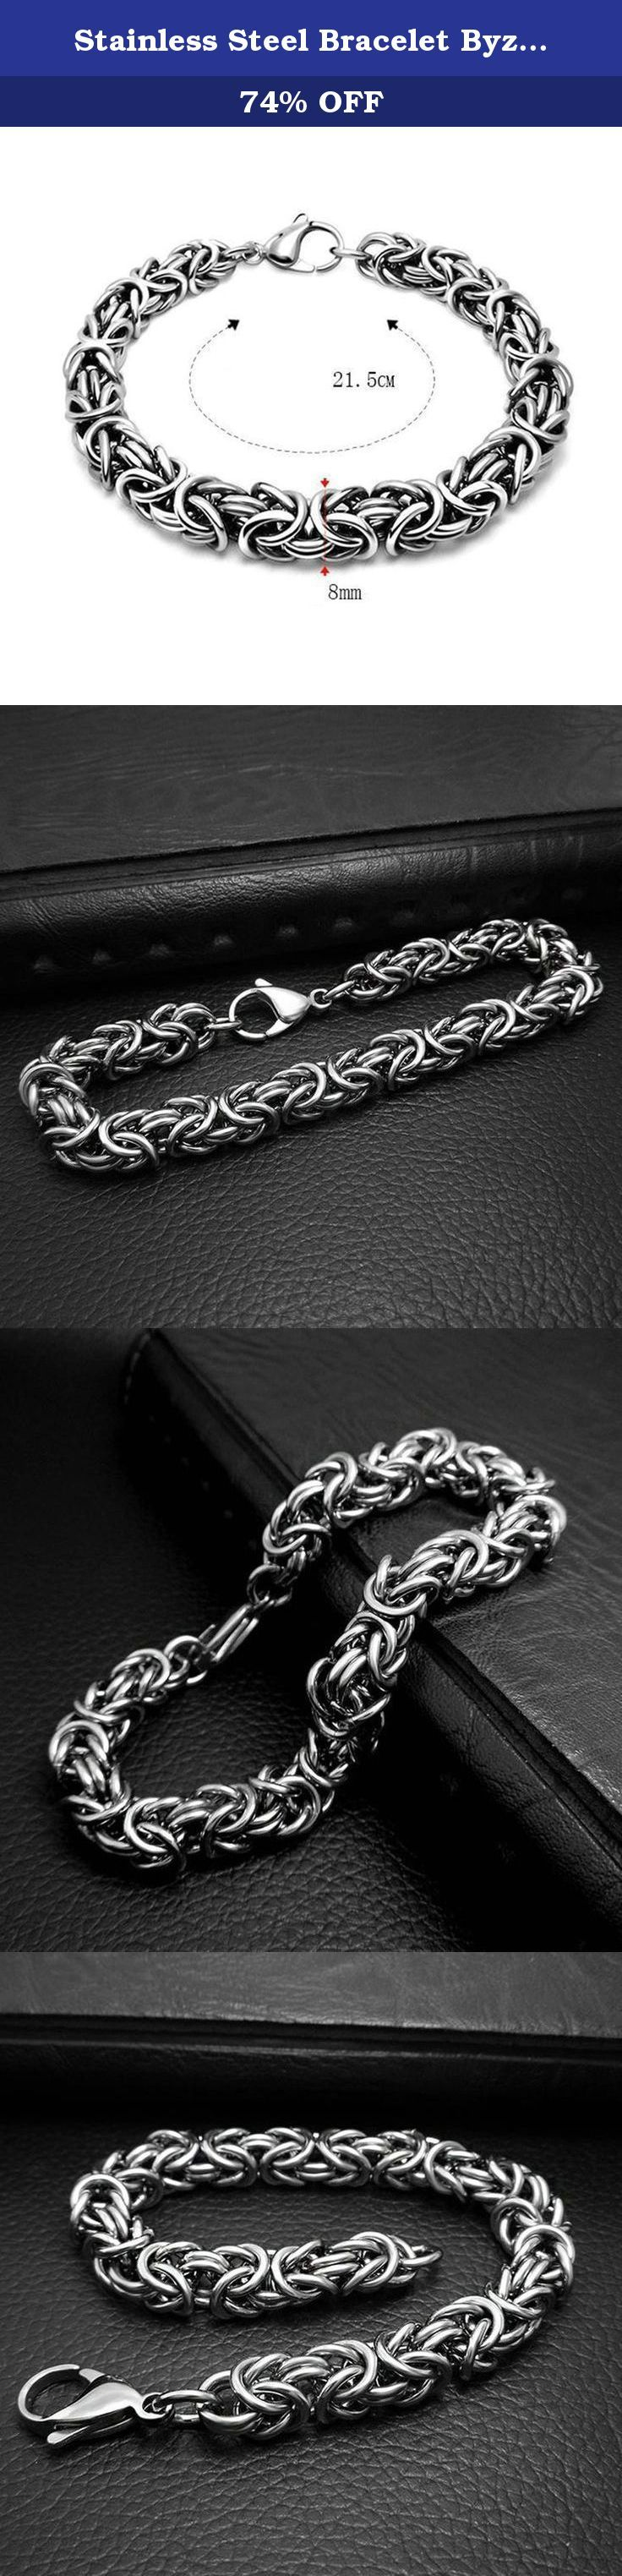 Stainless Steel Bracelet Byzantine Chain Length 21.5 CM Width 0.8 CM - Adisaer Jewelry. This bracelet is a perfect gift for a man. This bracelet is made of durable highly polished 100% stainless steel. Give it to your loved one, or treat yourself for a trendy bracelet style. The bracelet features a modern design showcasing a silver-tone byzantine chain and simple yet classic style. A large lobster claw type of a clasp allows to lock the bracelet securely around your wrist. This bracelet…